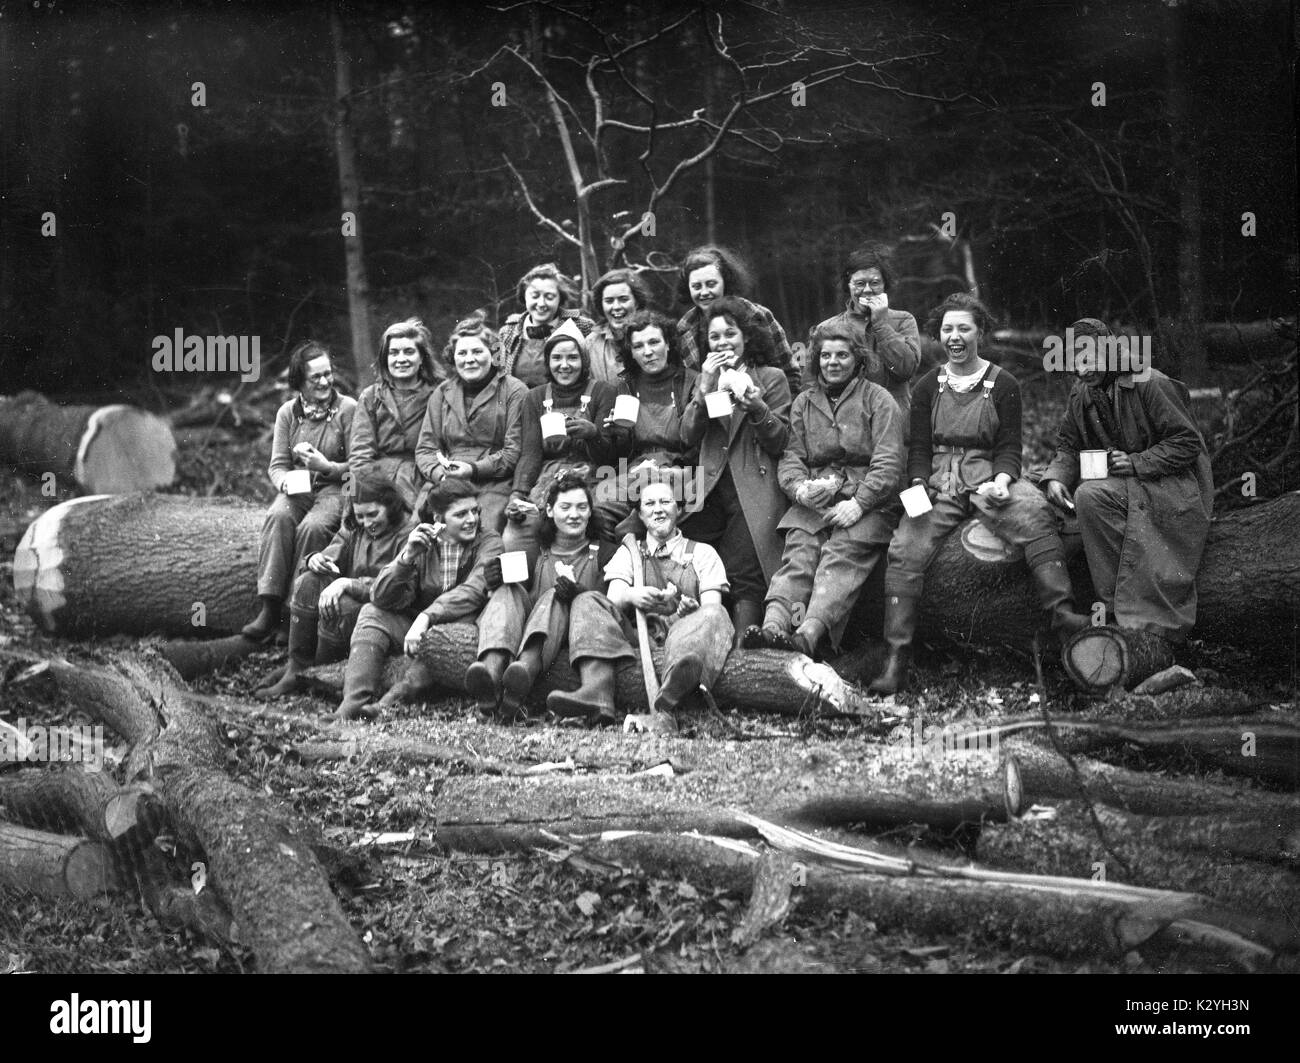 Women's Land Army or Land Girls of Timber Corps doing forestry work in southern England during World War Two - Stock Image